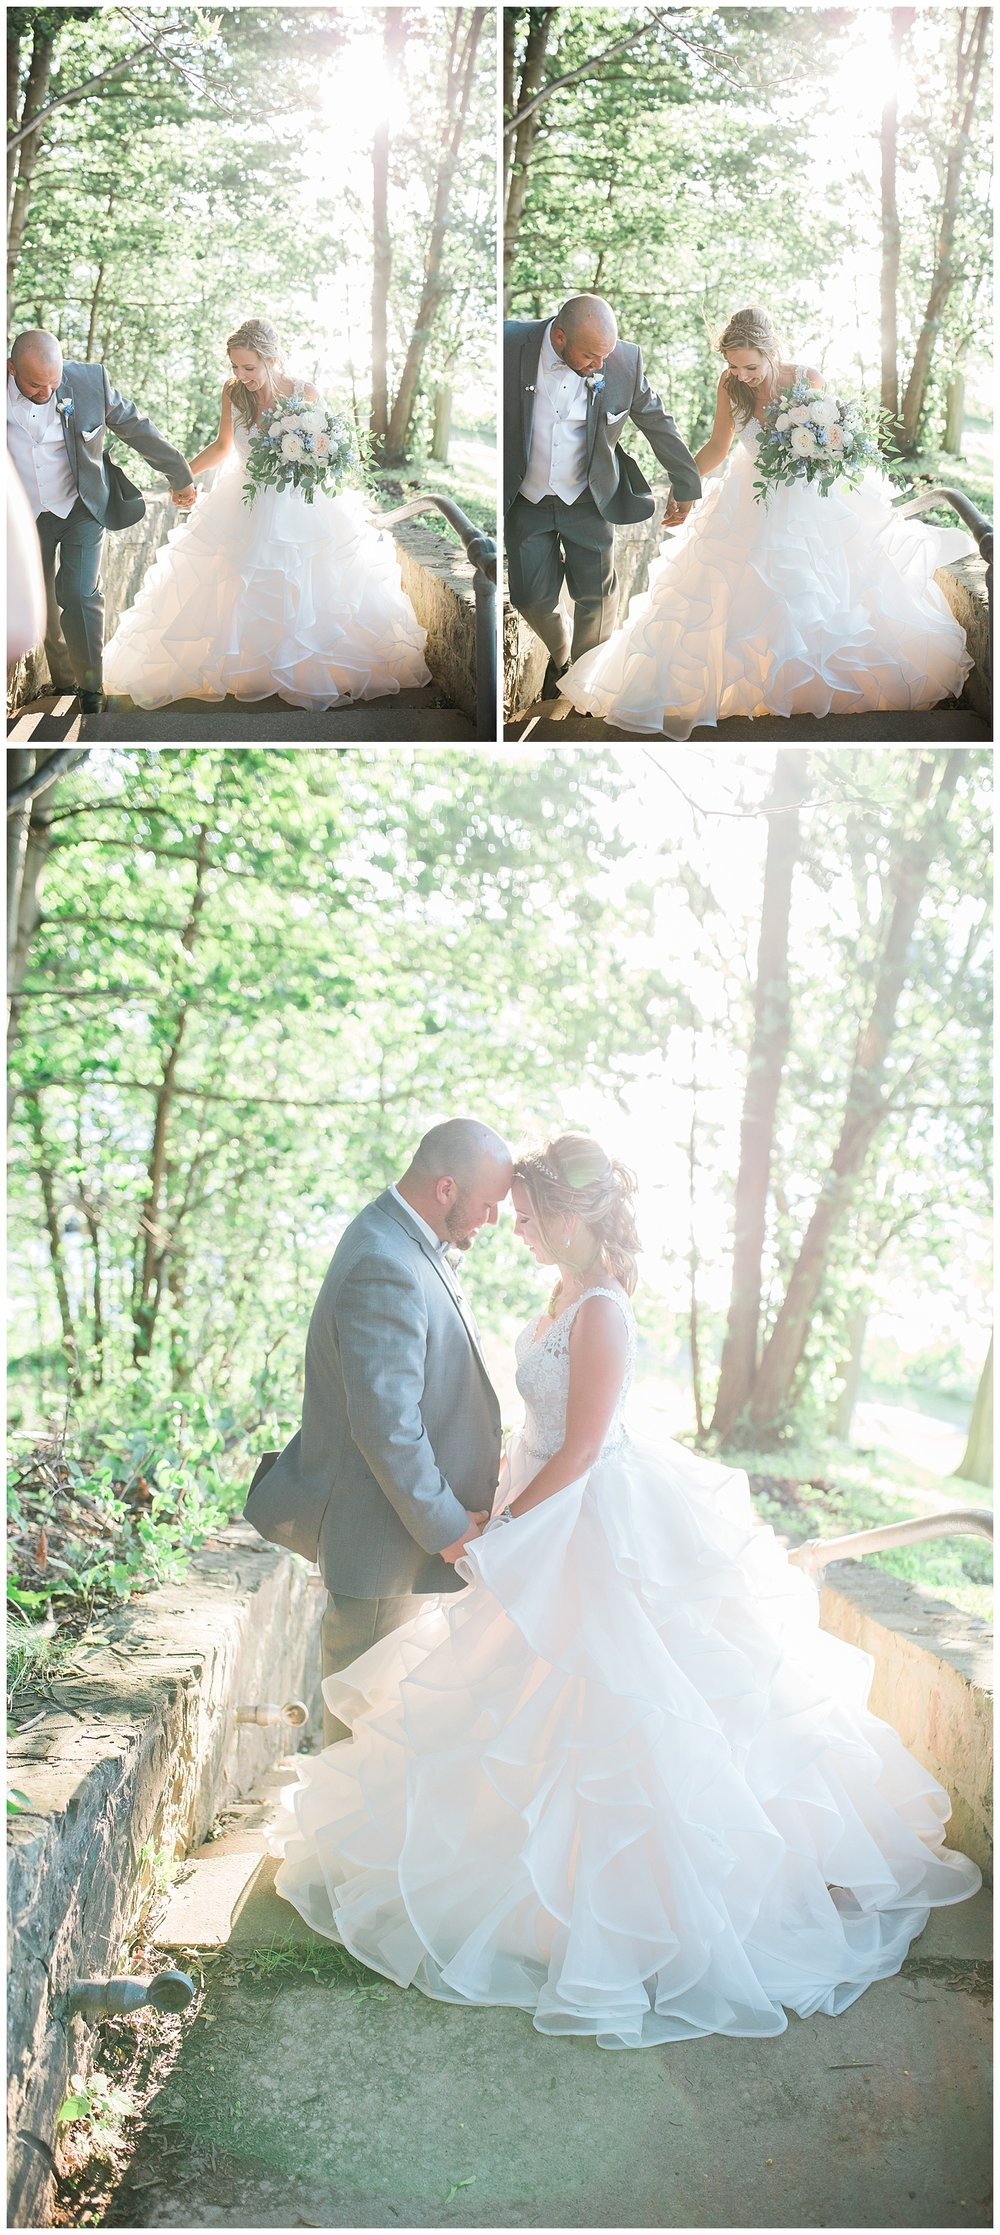 Sean and Andrea - Webster wedding - lass and beau-1255_Buffalo wedding photography.jpg